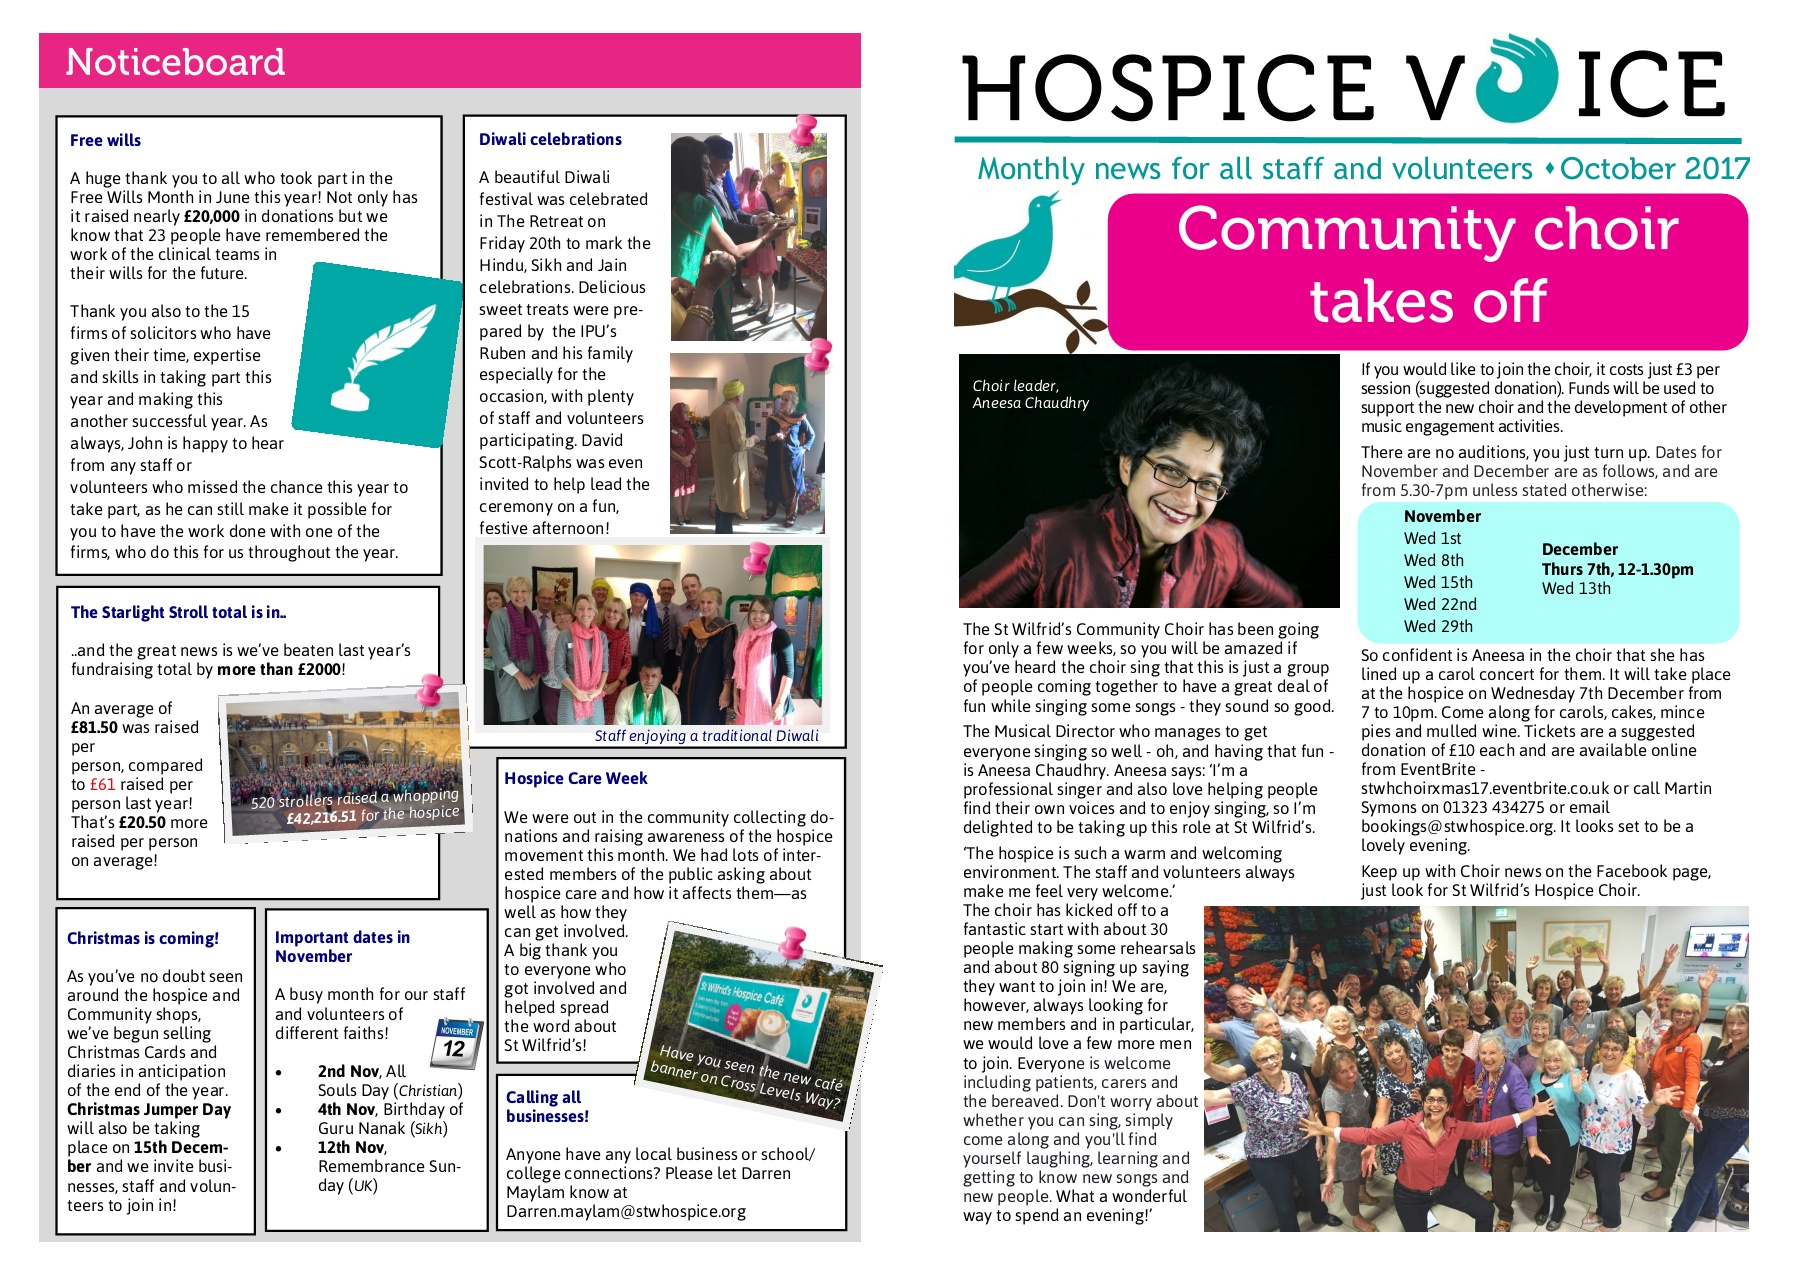 October Hospice Voice